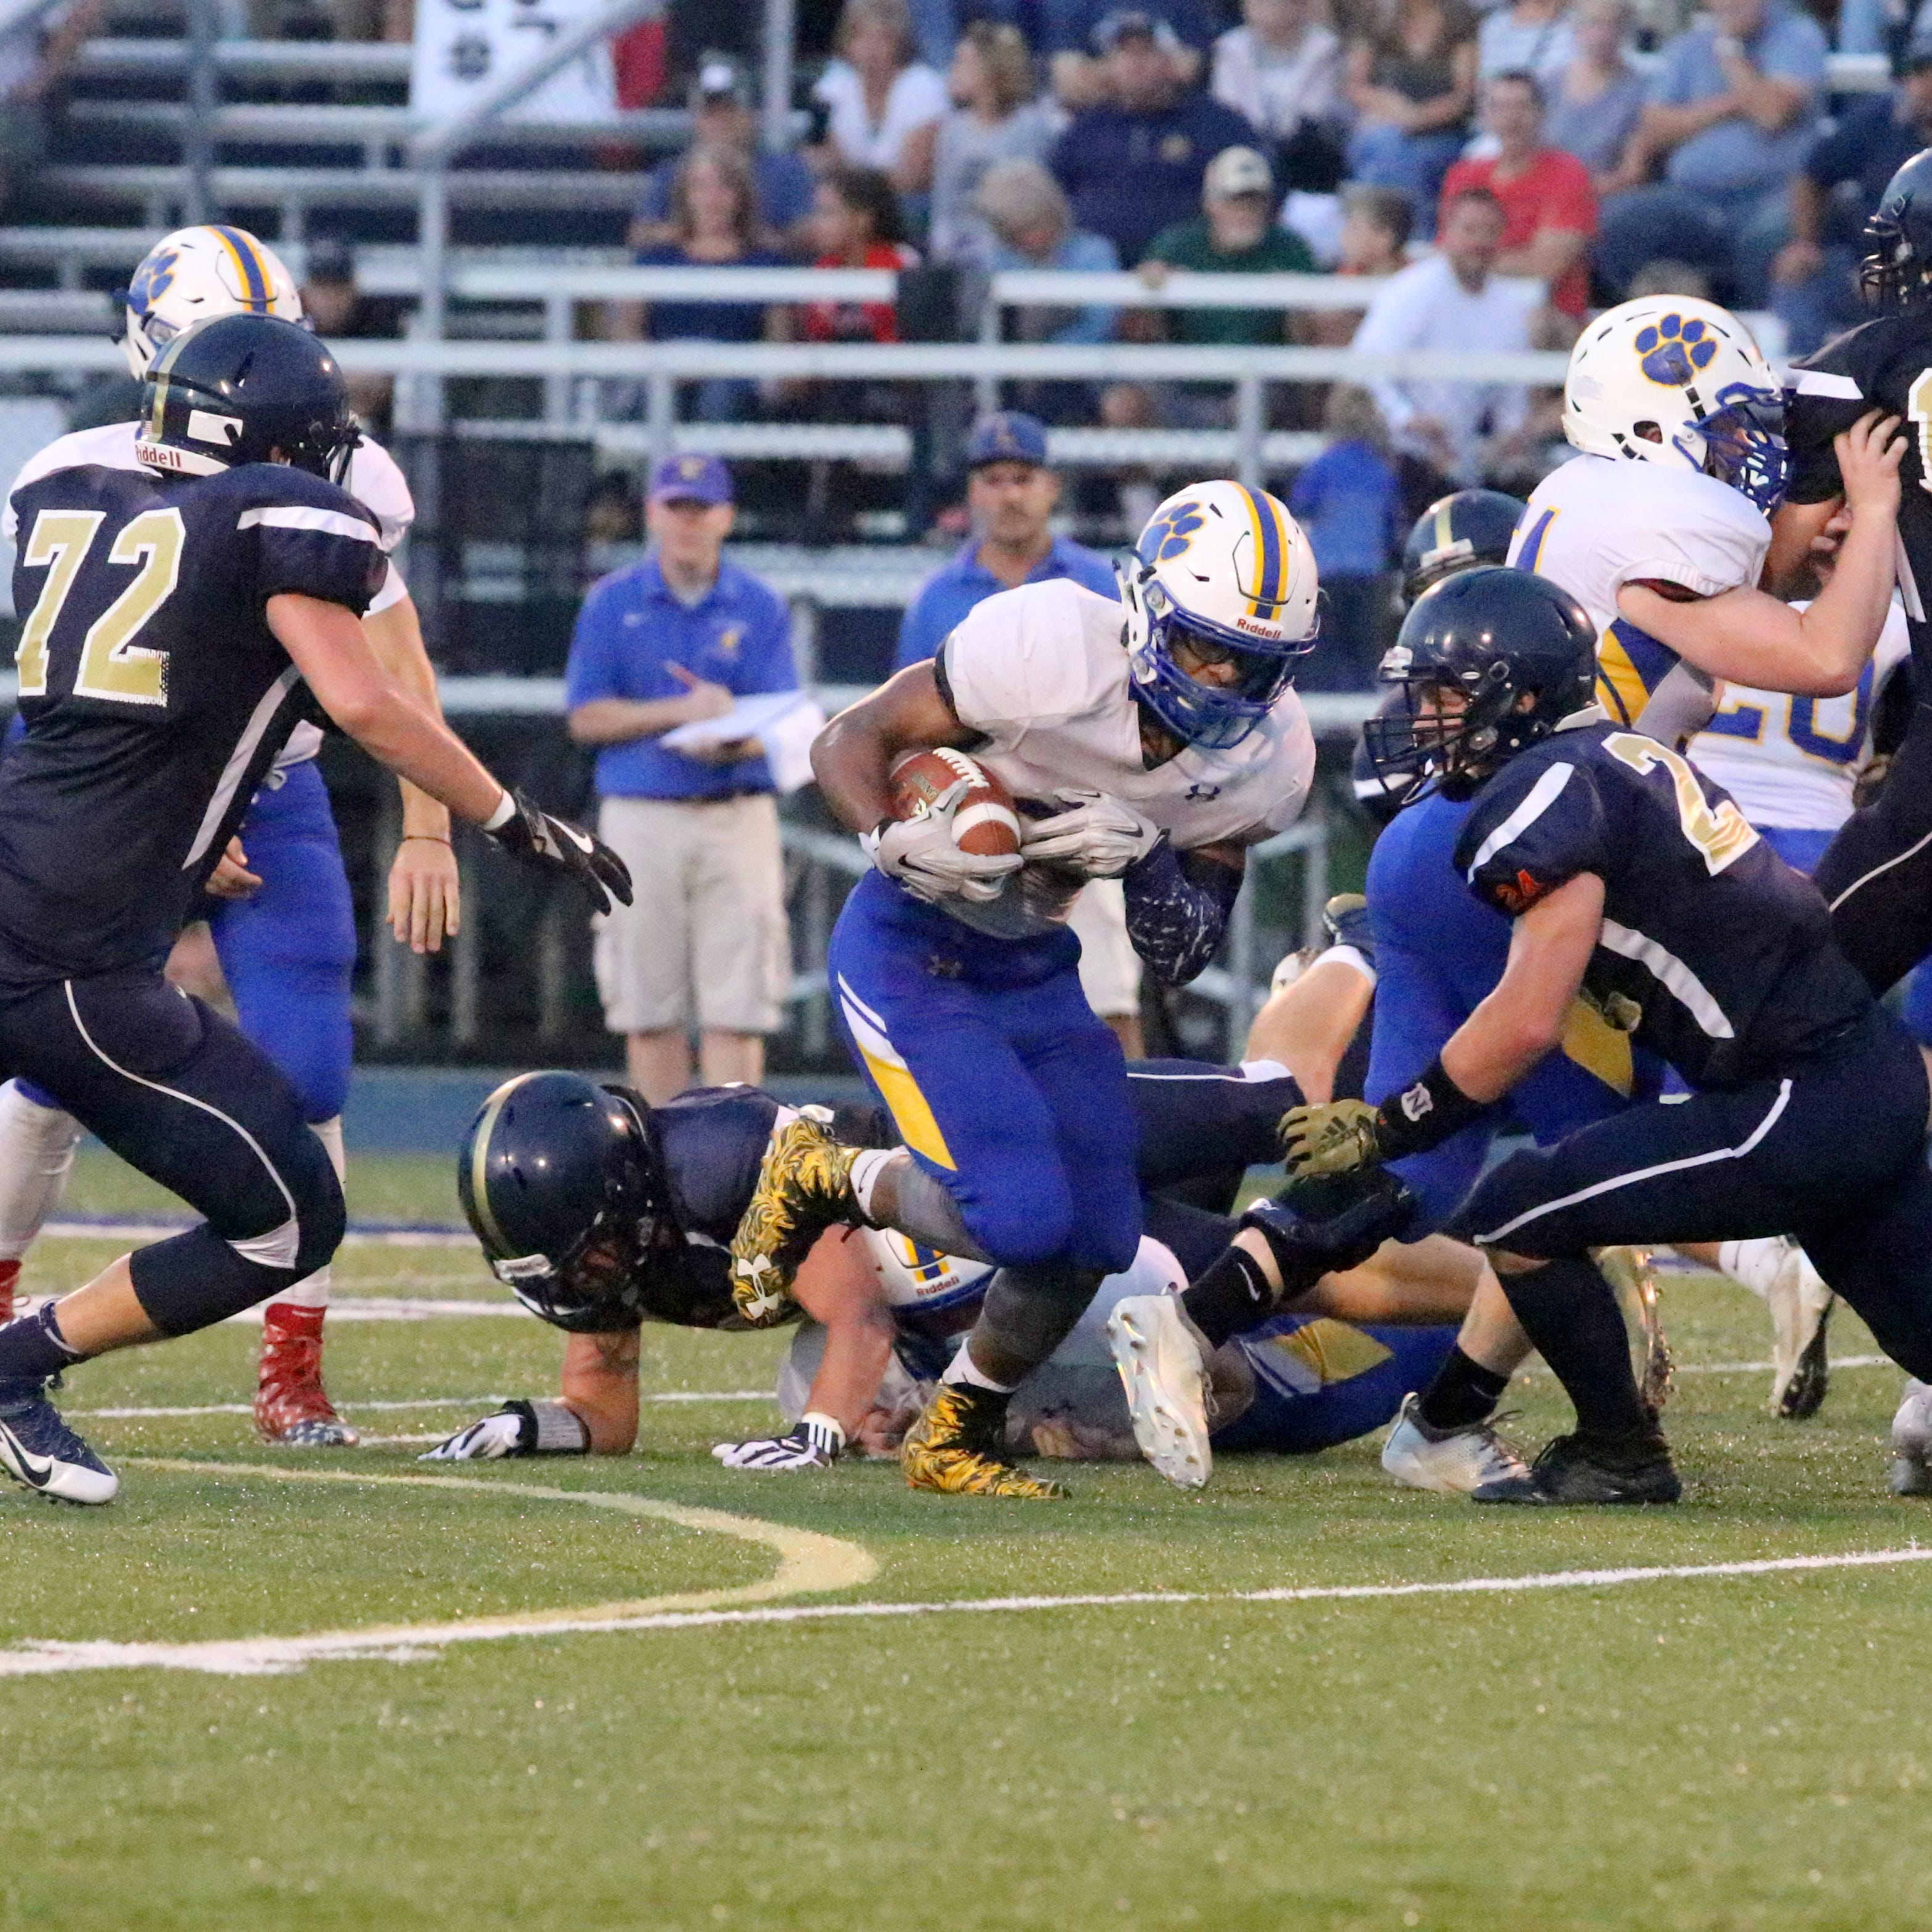 Big plays carry Lansing past Notre Dame as eight-man football gets going